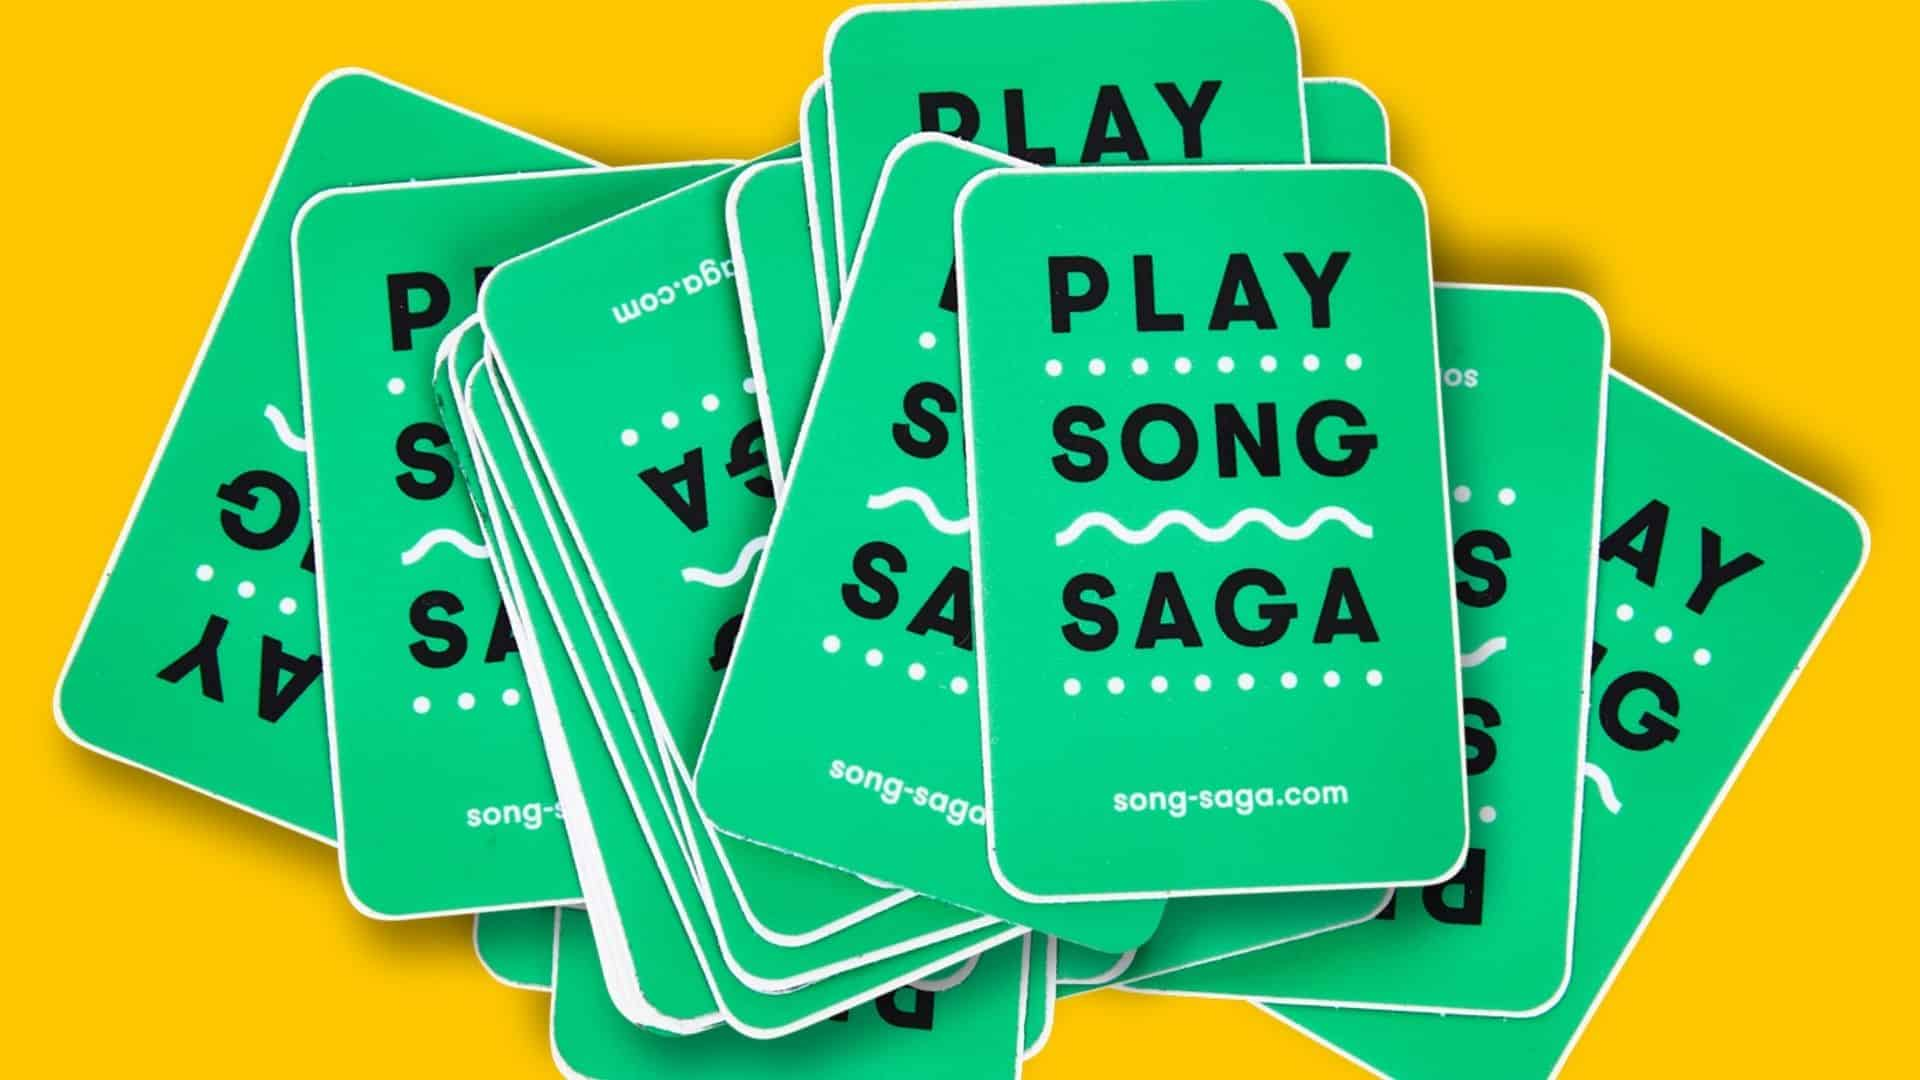 Why you should be playing the #1 hist party game song saga, Best party games, Song Saga Game, Music Game, Story Game, Party Game, Best Party Games, SongSaga, Green Box that Rocks, Card Game, Cards, You Rock Game, Conversation Starters Game, Spotify Game